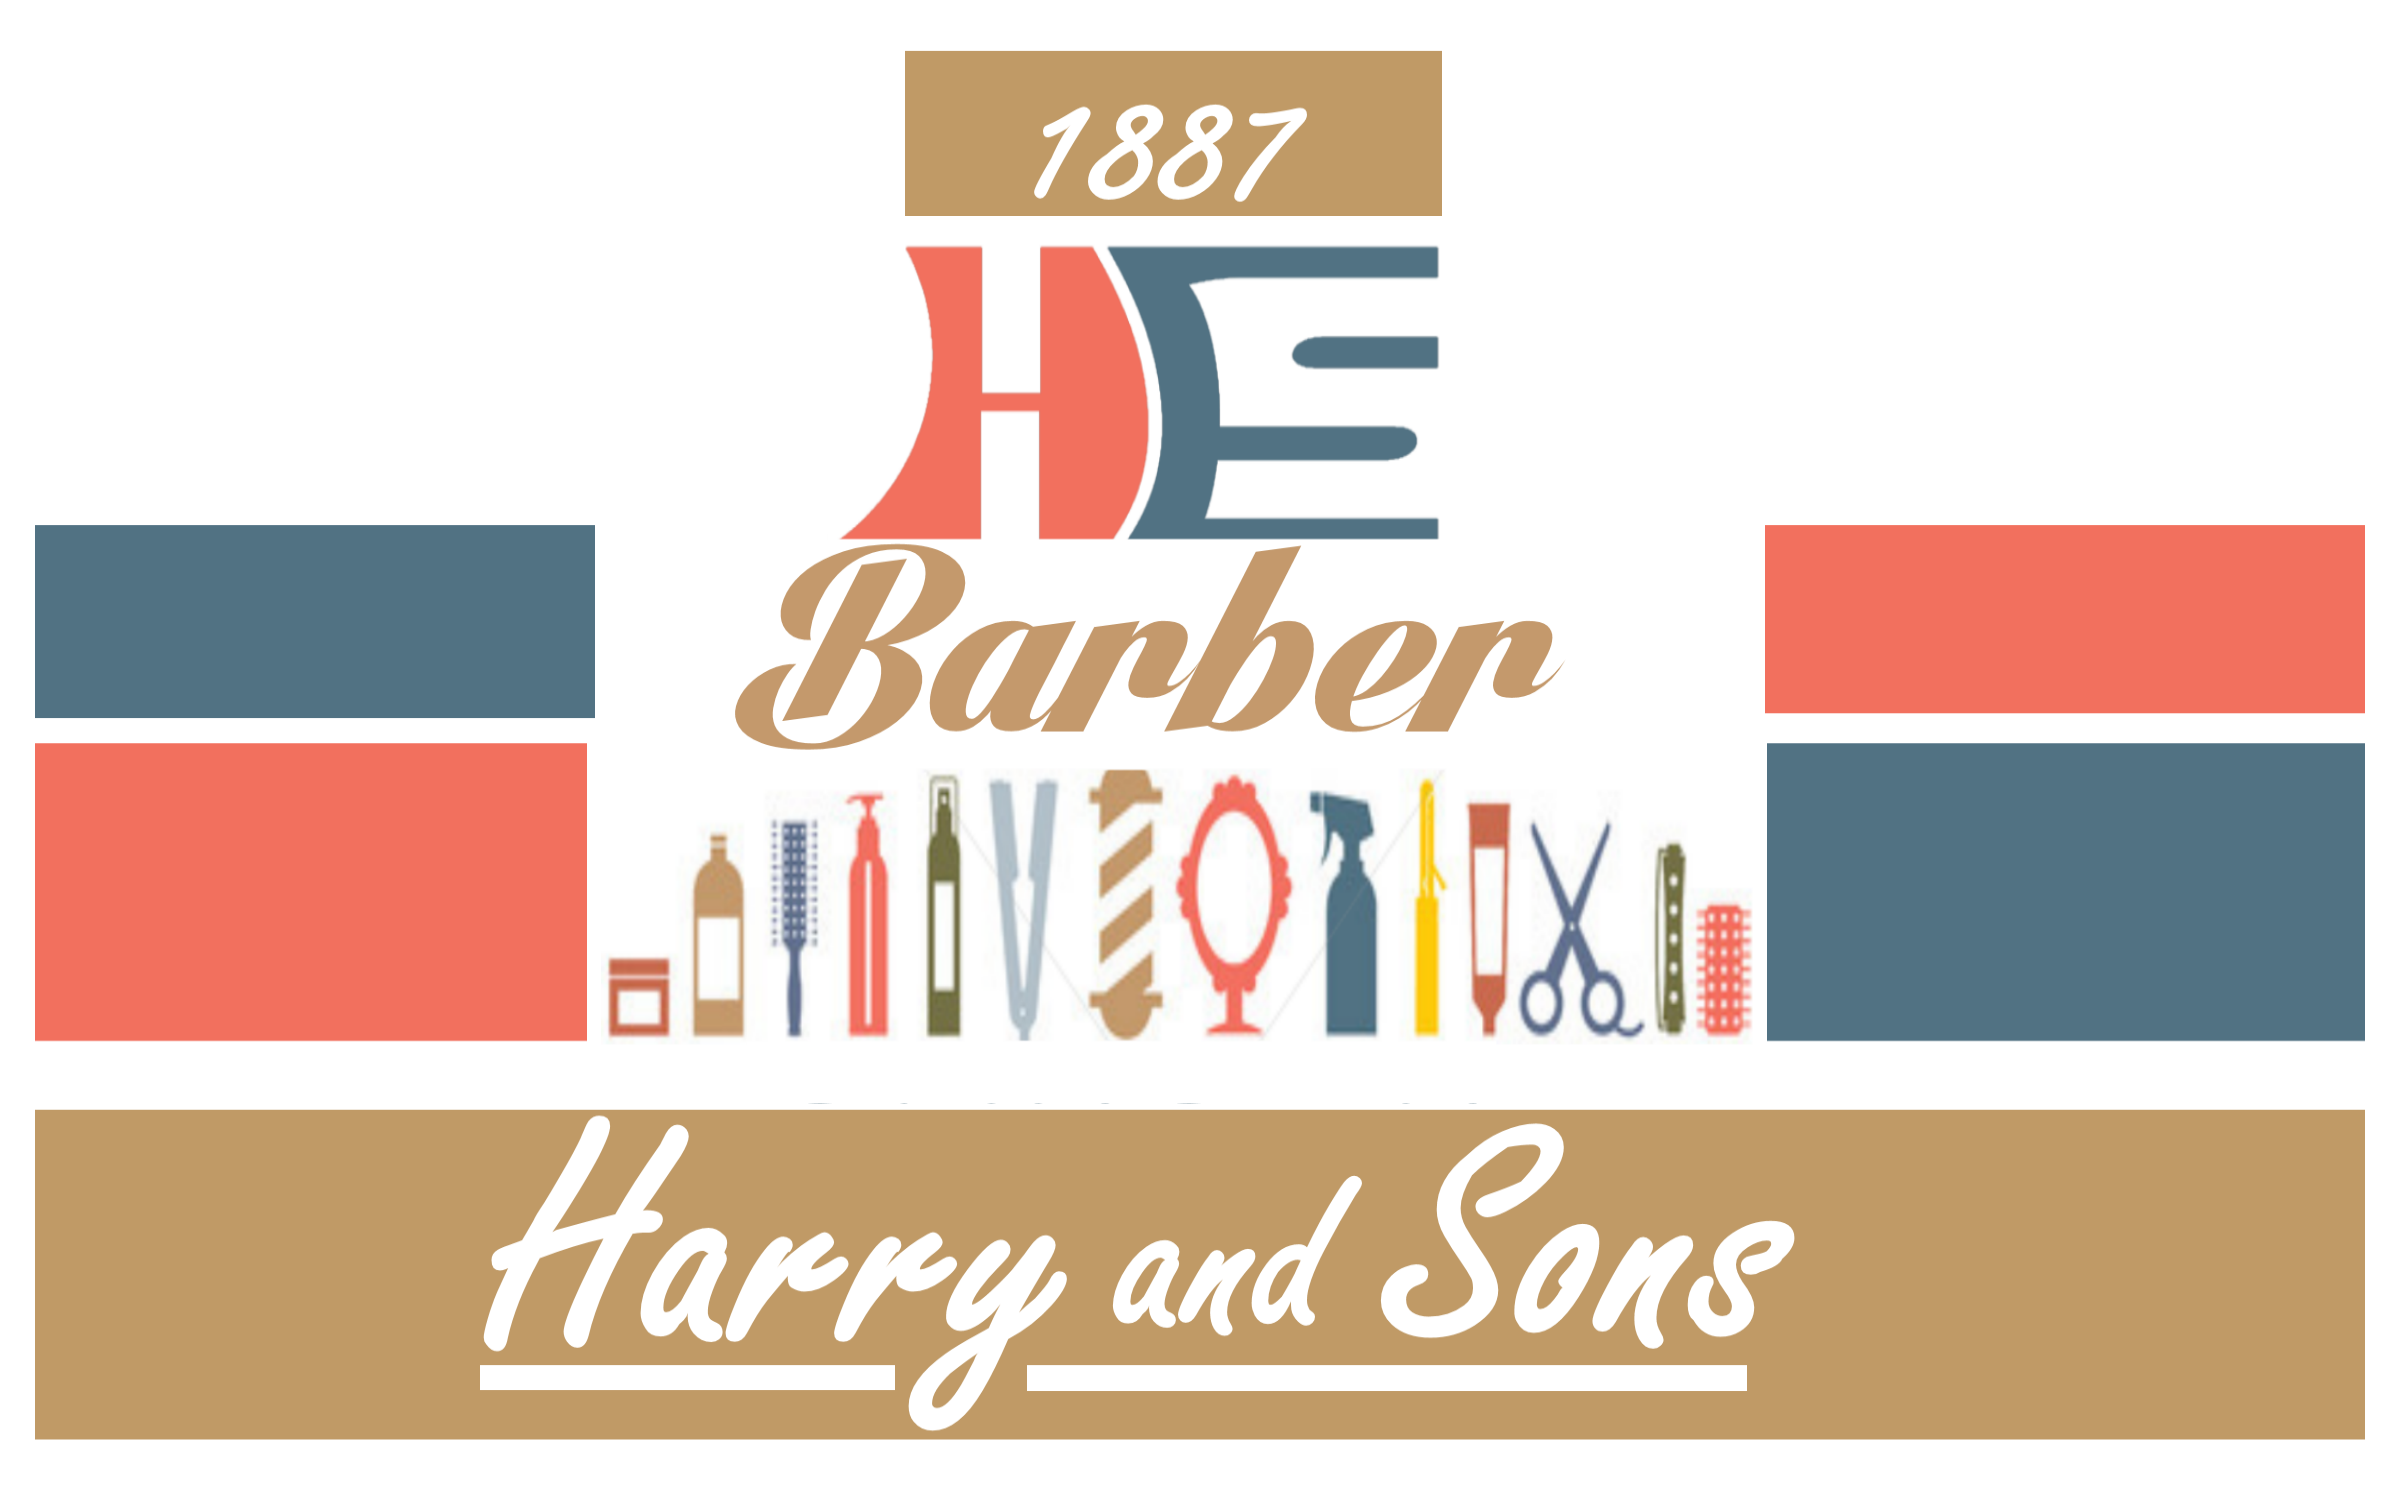 Logo Design by Roberto Bassi - Entry No. 124 in the Logo Design Contest Captivating Logo Design for Harry and Sons Barber.